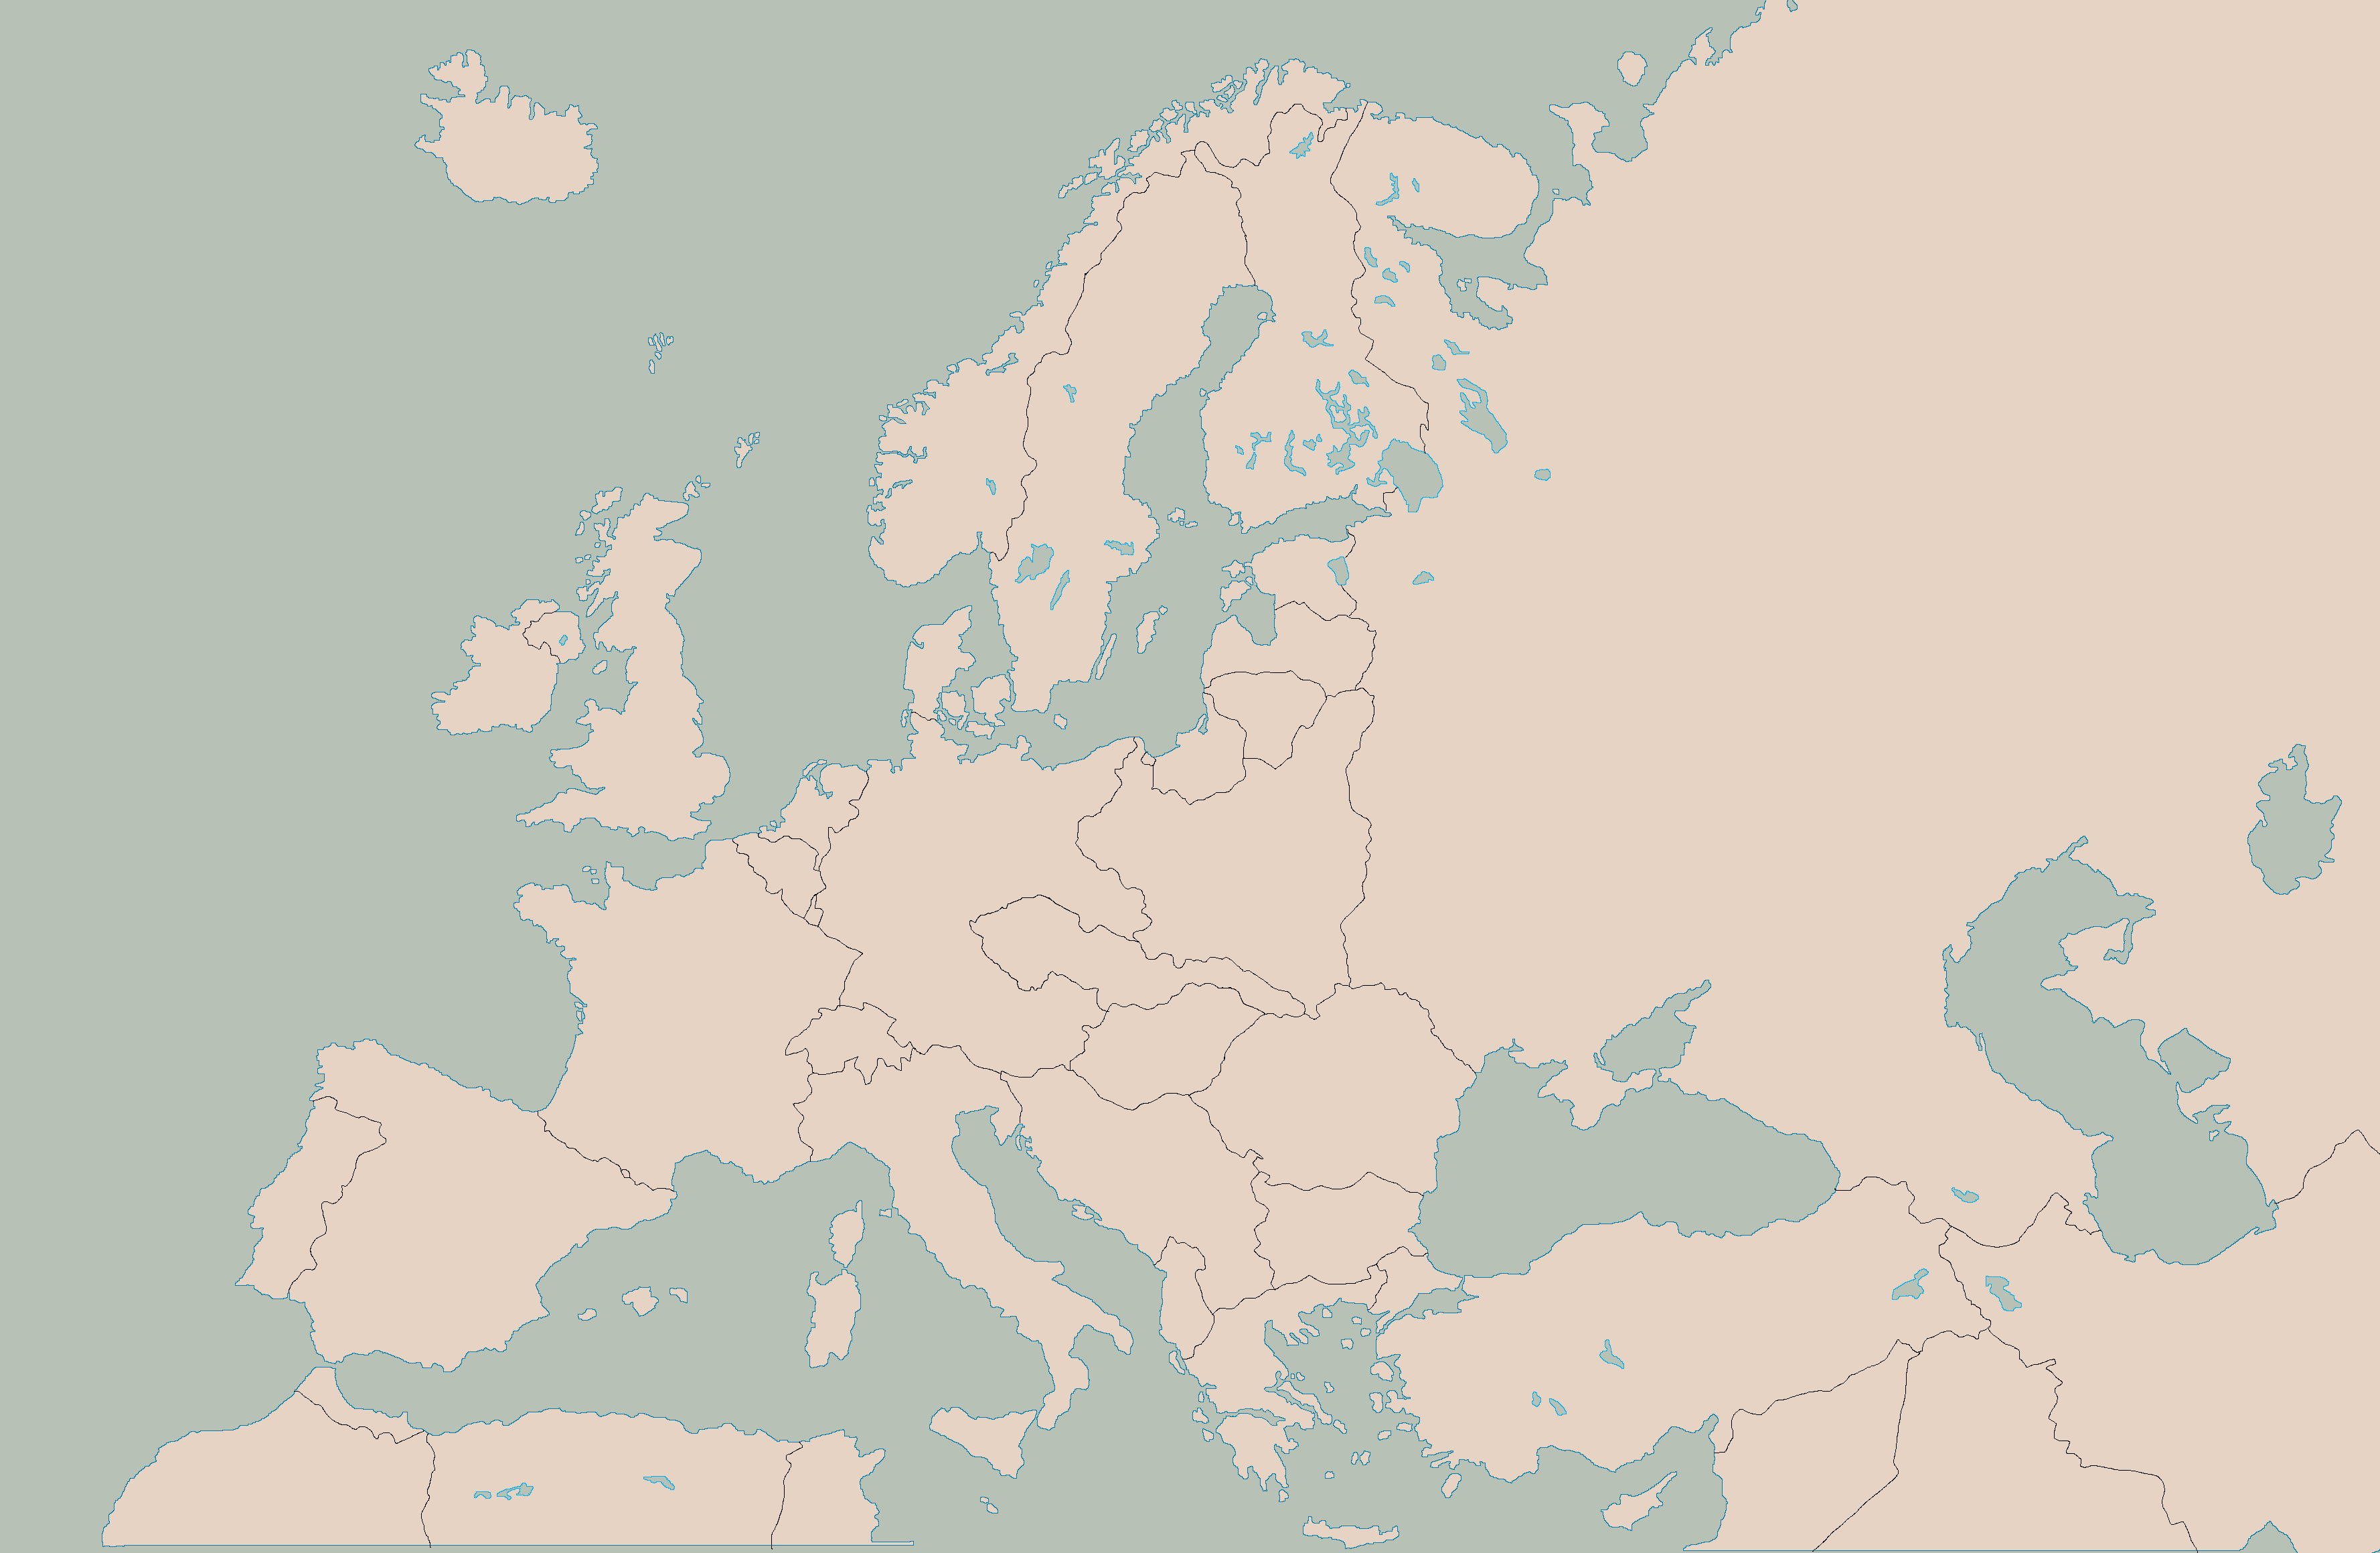 ... Blank Map Of Europe With 1938 Borders By Kuusinen